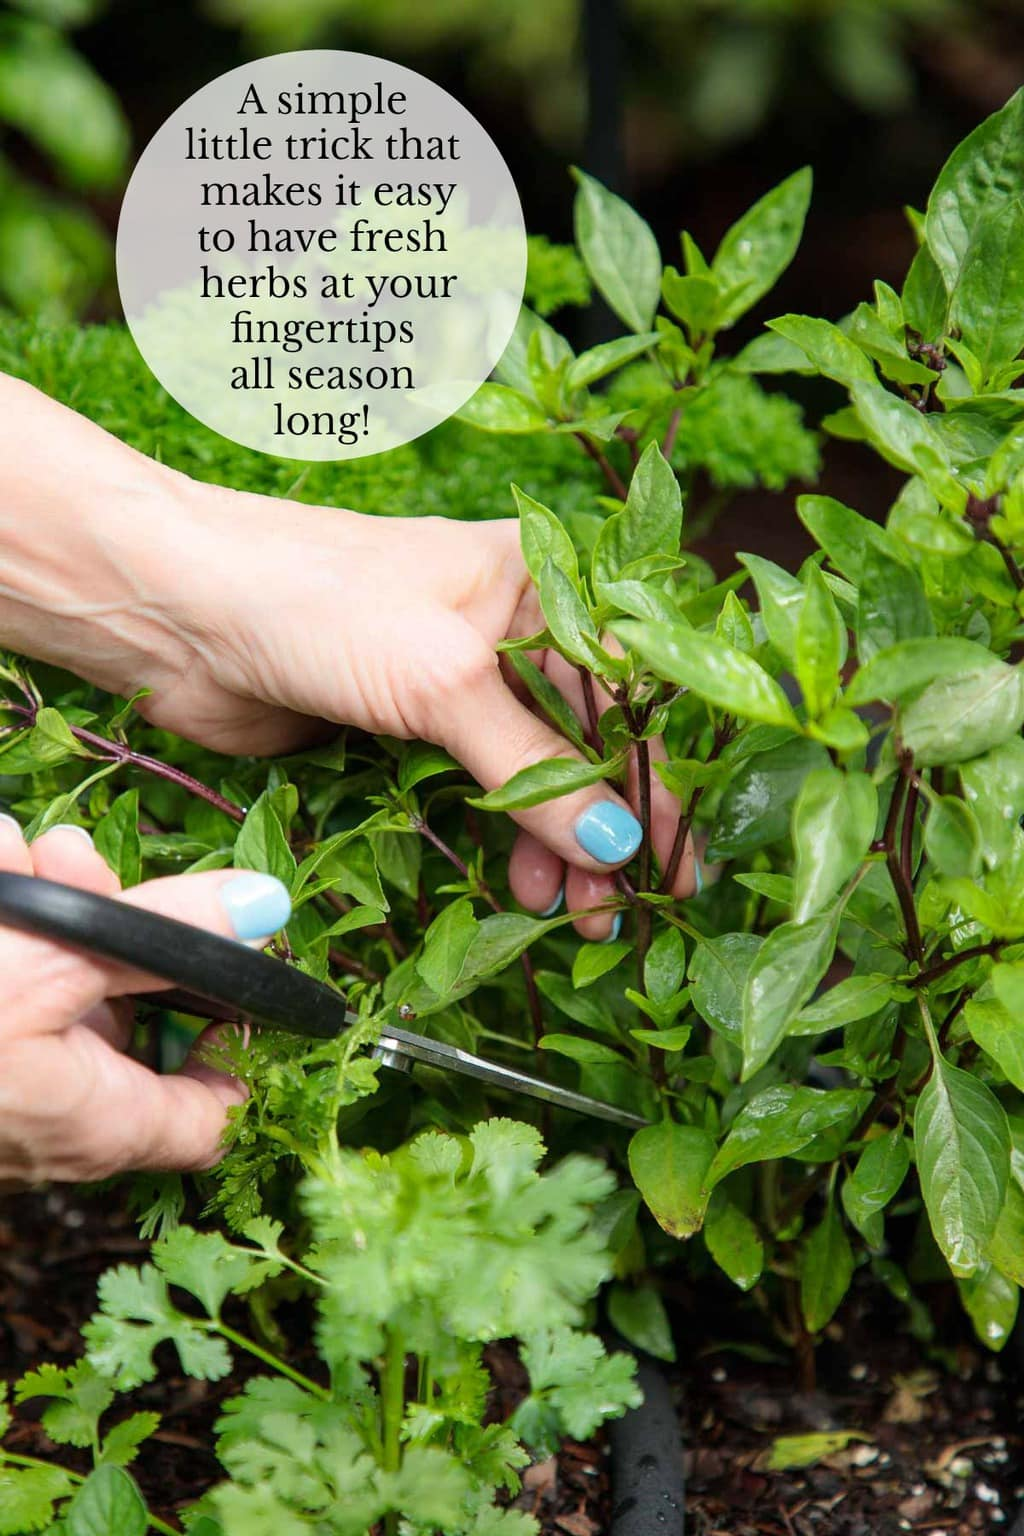 This simple little trick will save you lots of steps and make it super easy to always have fresh summer herbs at your fingertips all season long! #freshherbs, #summerherbs, #freshherbtricks